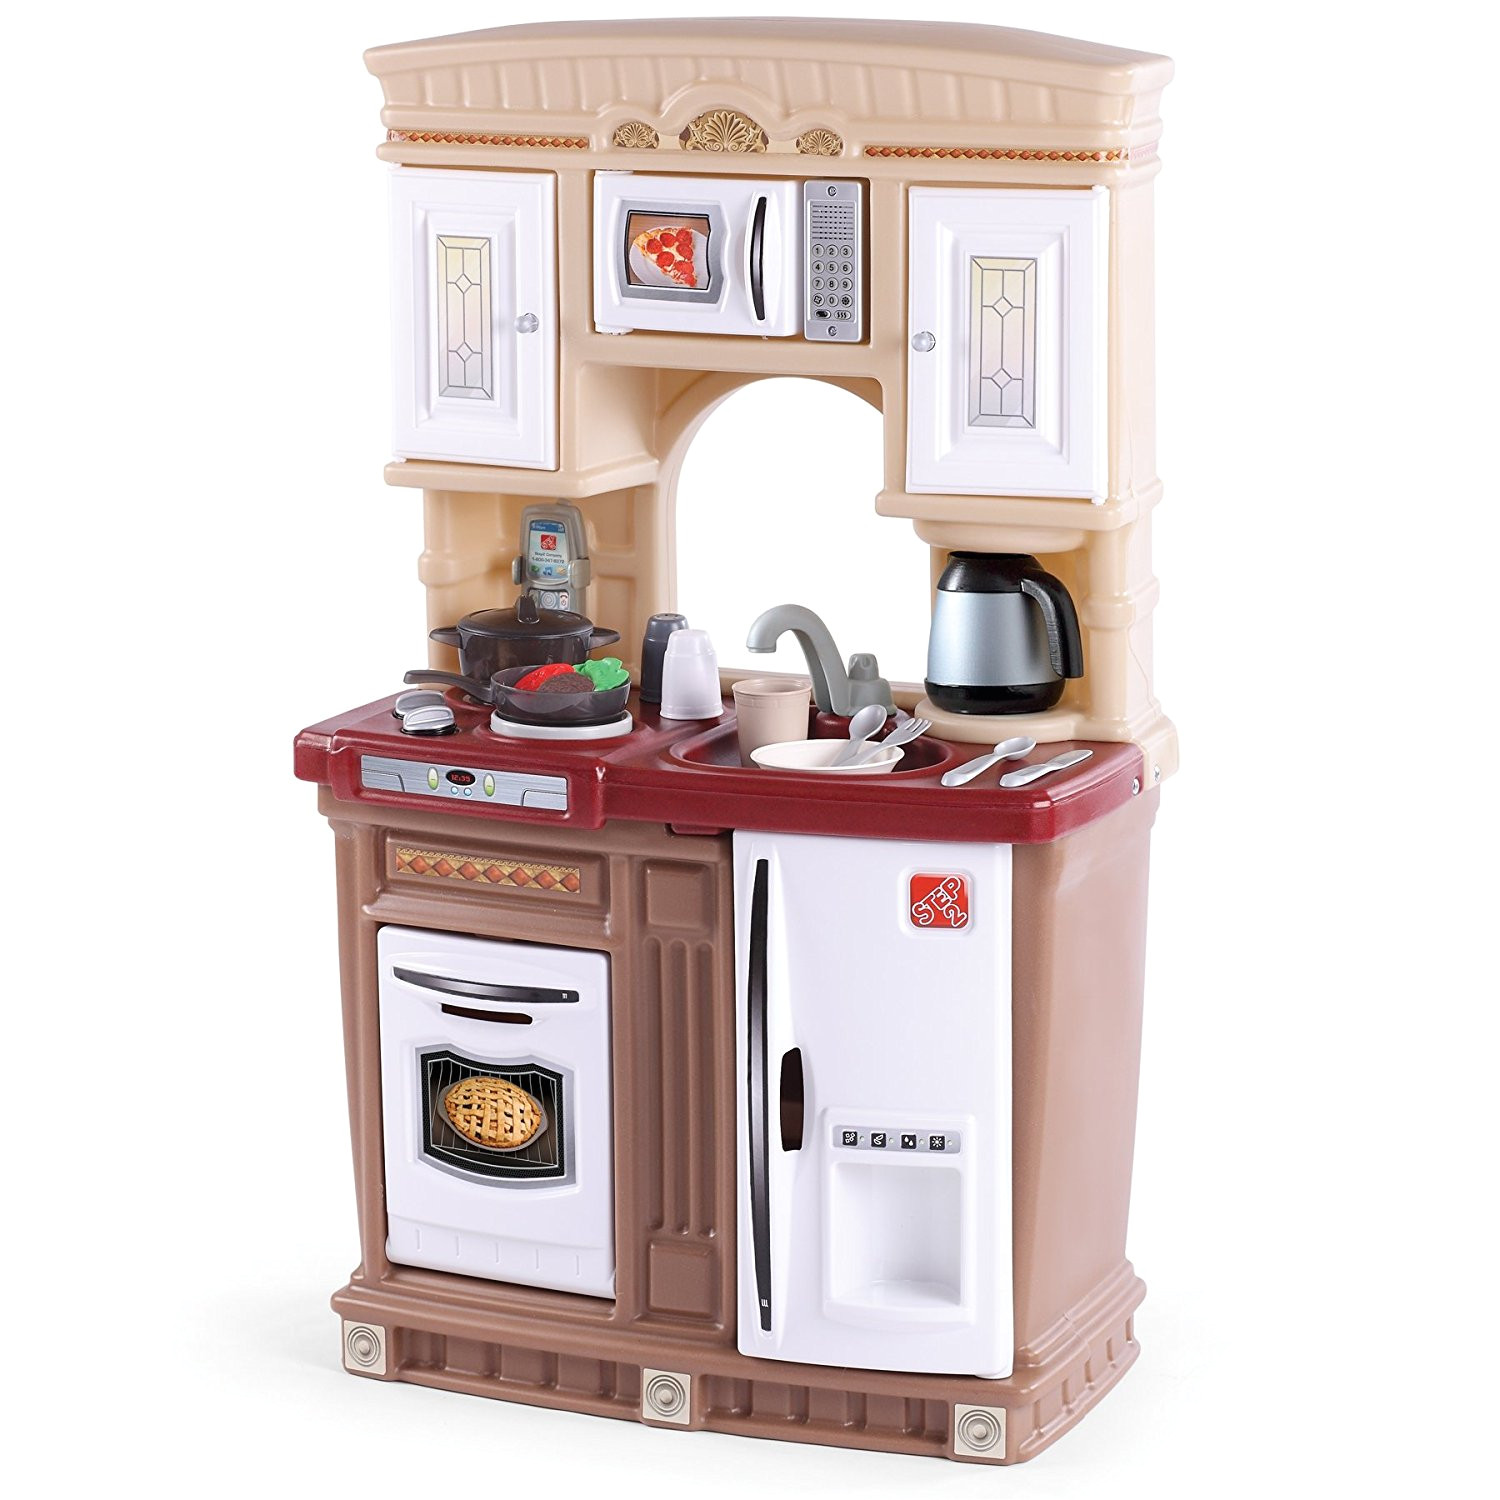 extraordinary imaginarium all in one wooden kitchen set at best toys for two year olds